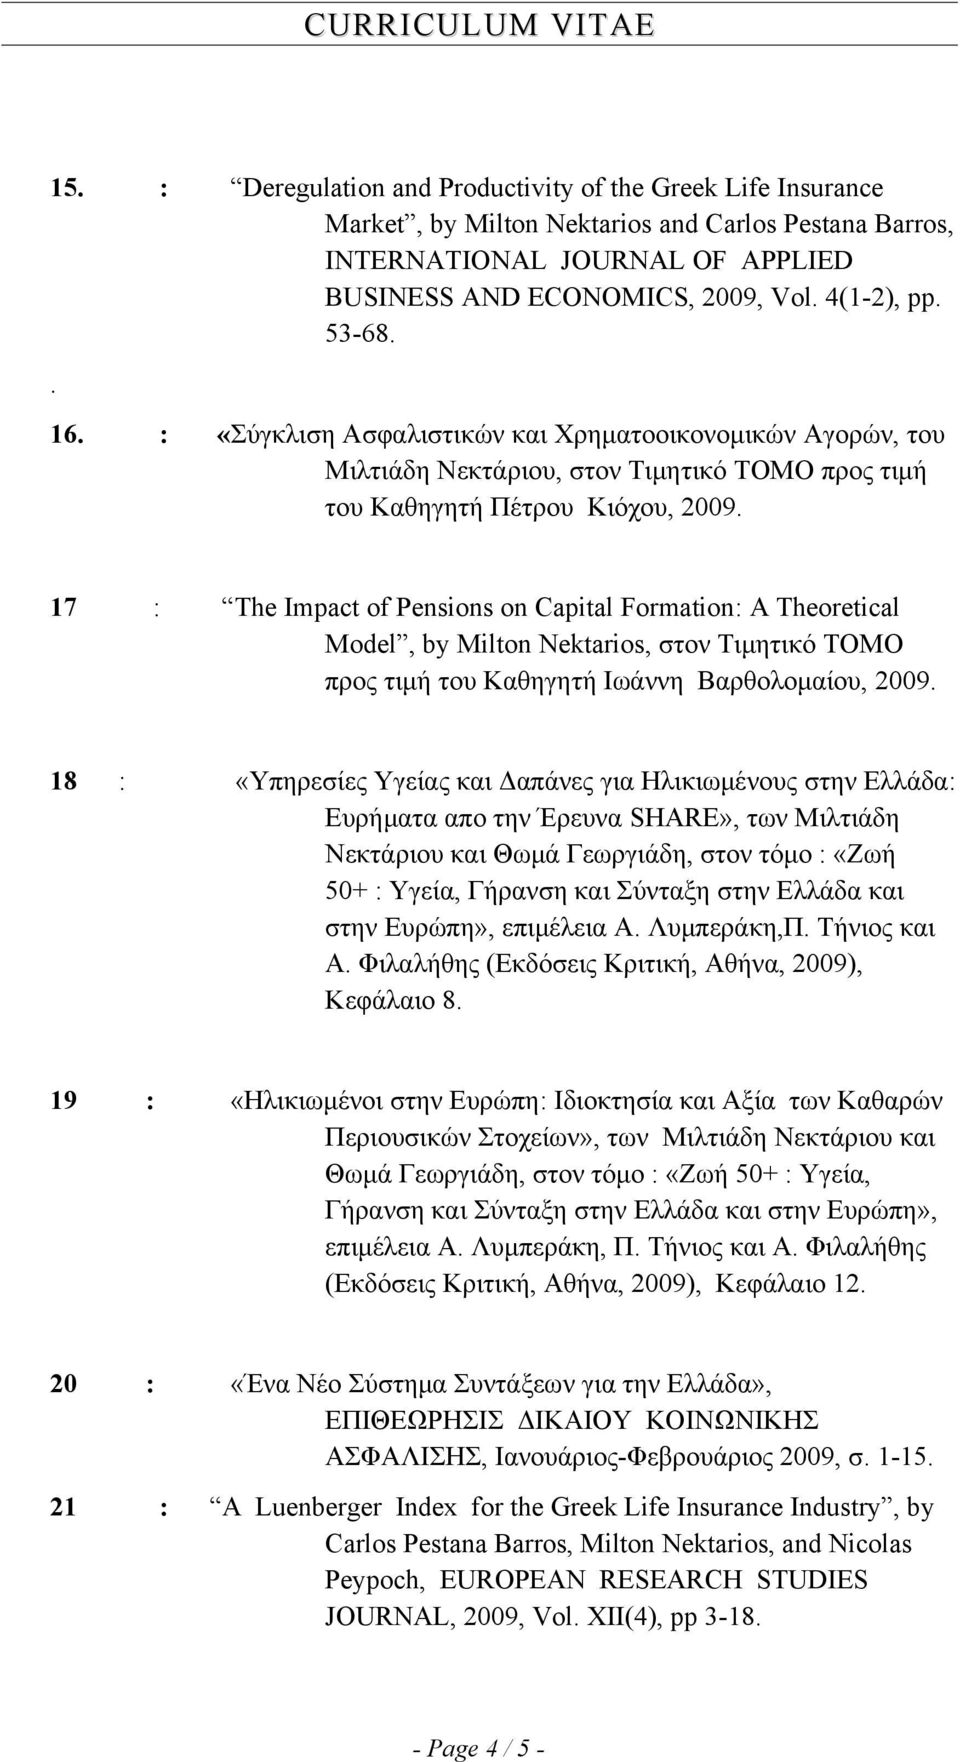 17 : The Impact of Pensions on Capital Formation: A Theoretical Model, by Milton Nektarios, στον Τιμητικό ΤΟΜΟ προς τιμή του Καθηγητή Ιωάννη Βαρθολομαίου, 2009.